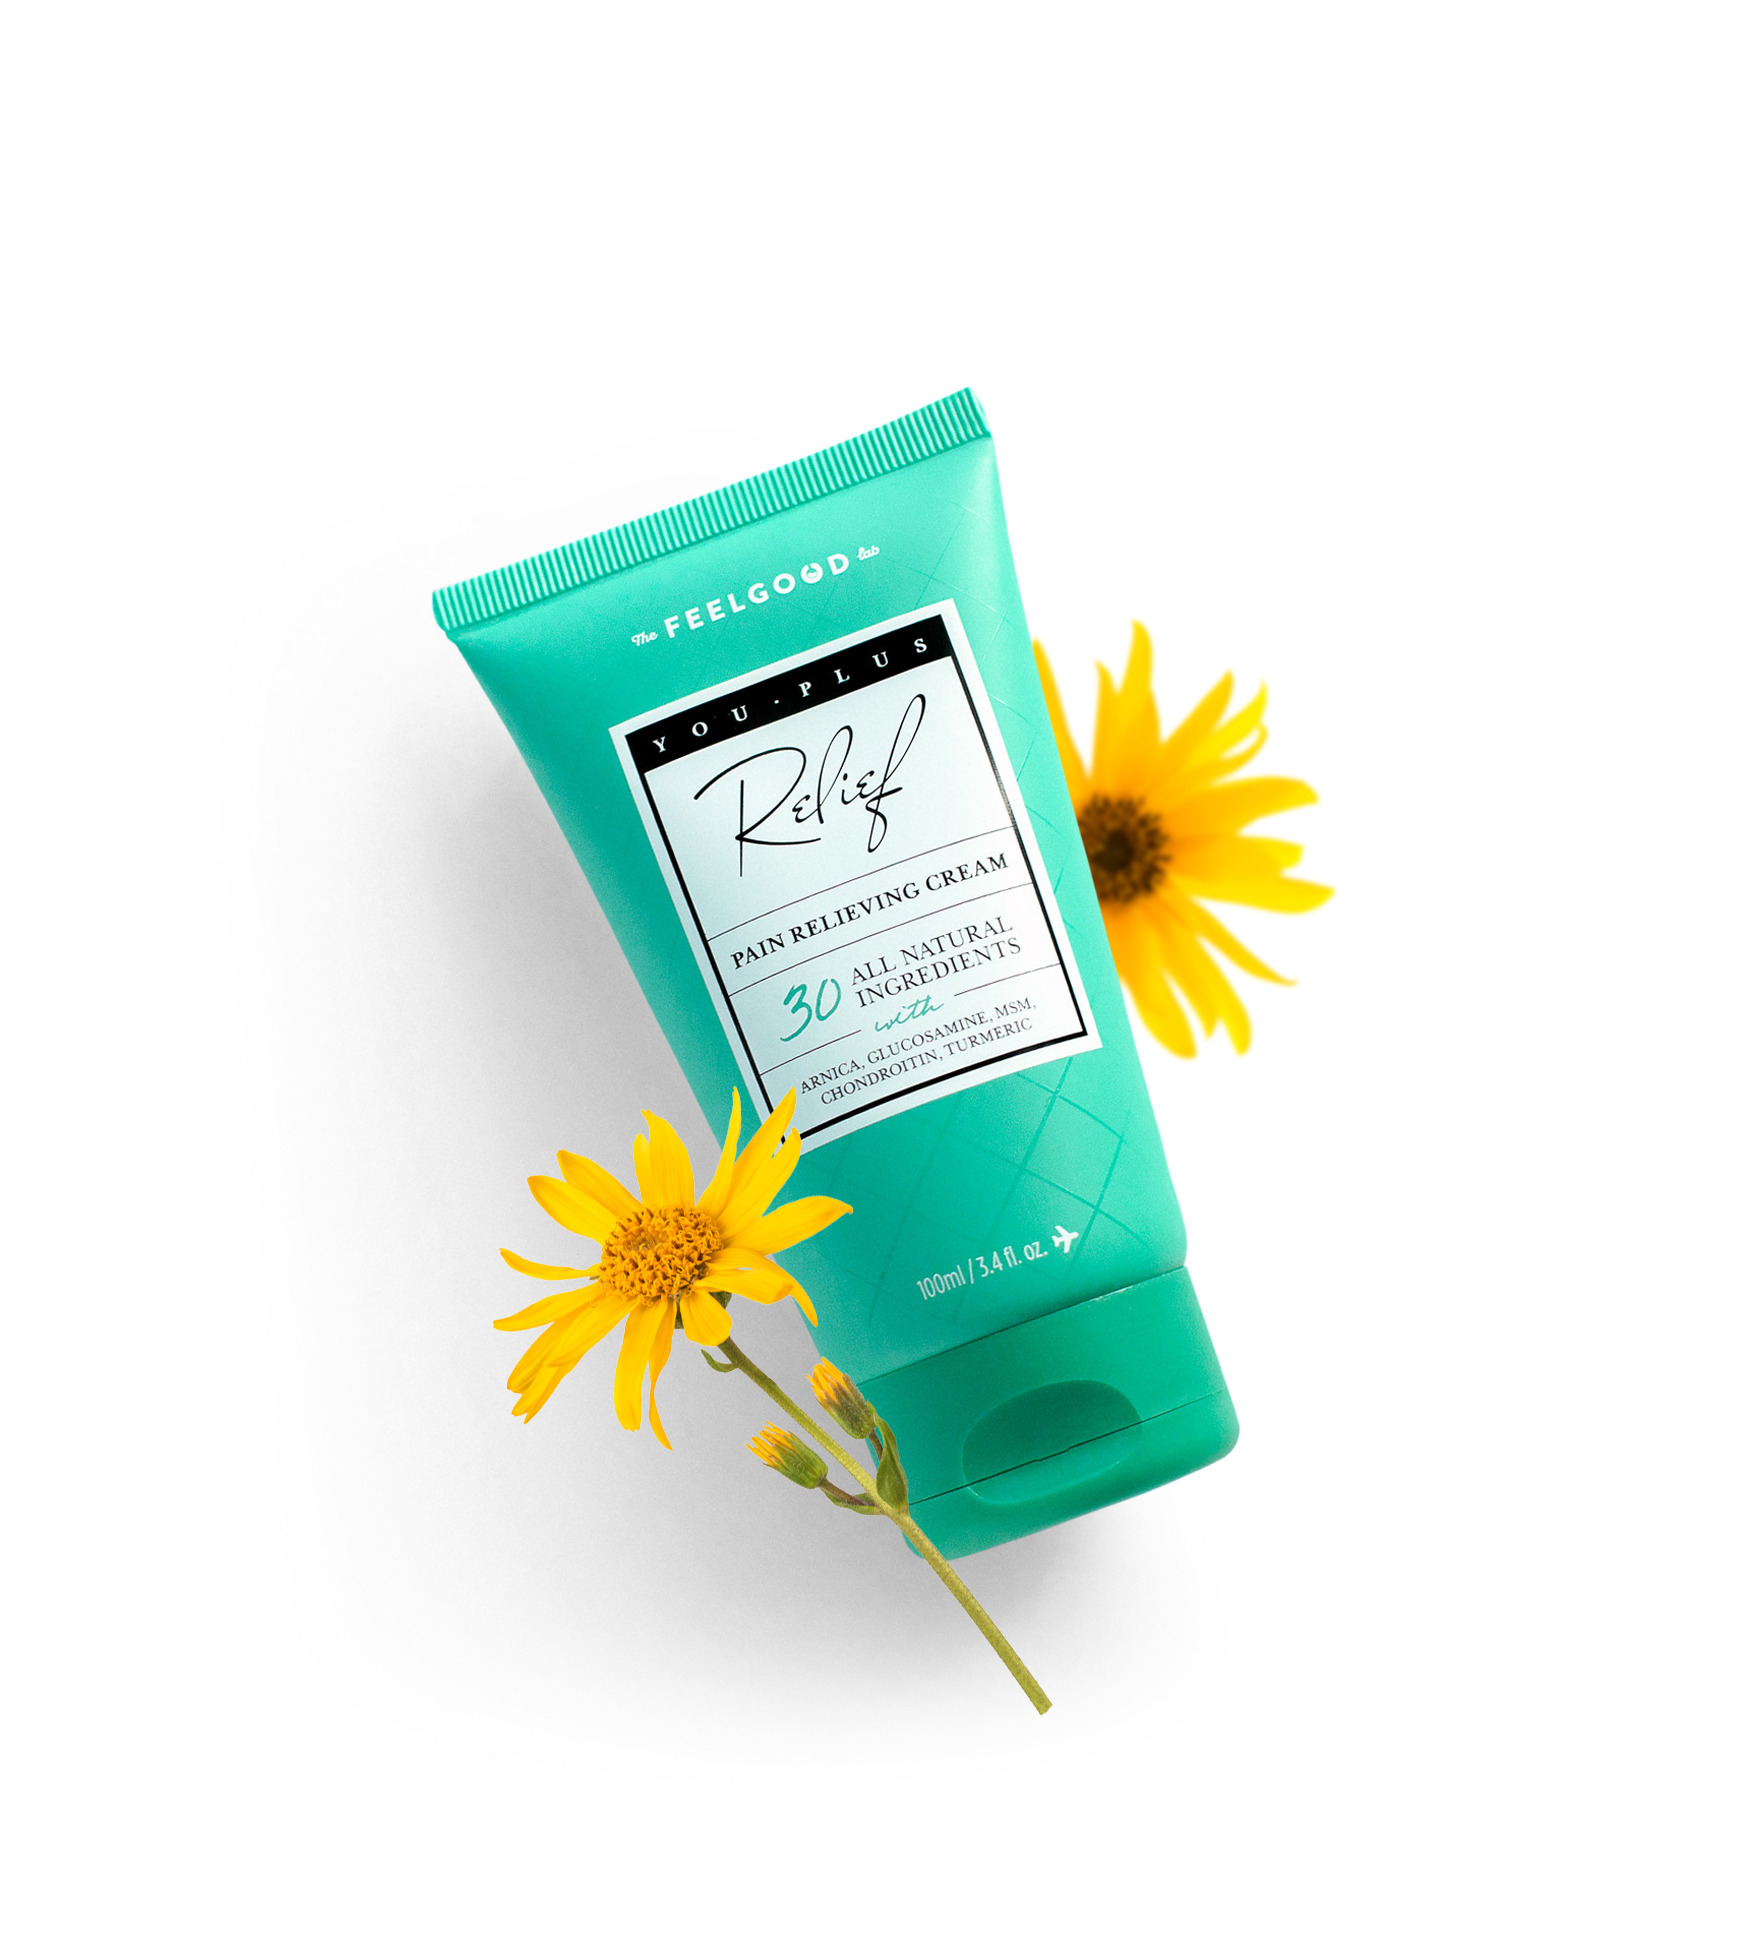 Arnica for natural pain relief